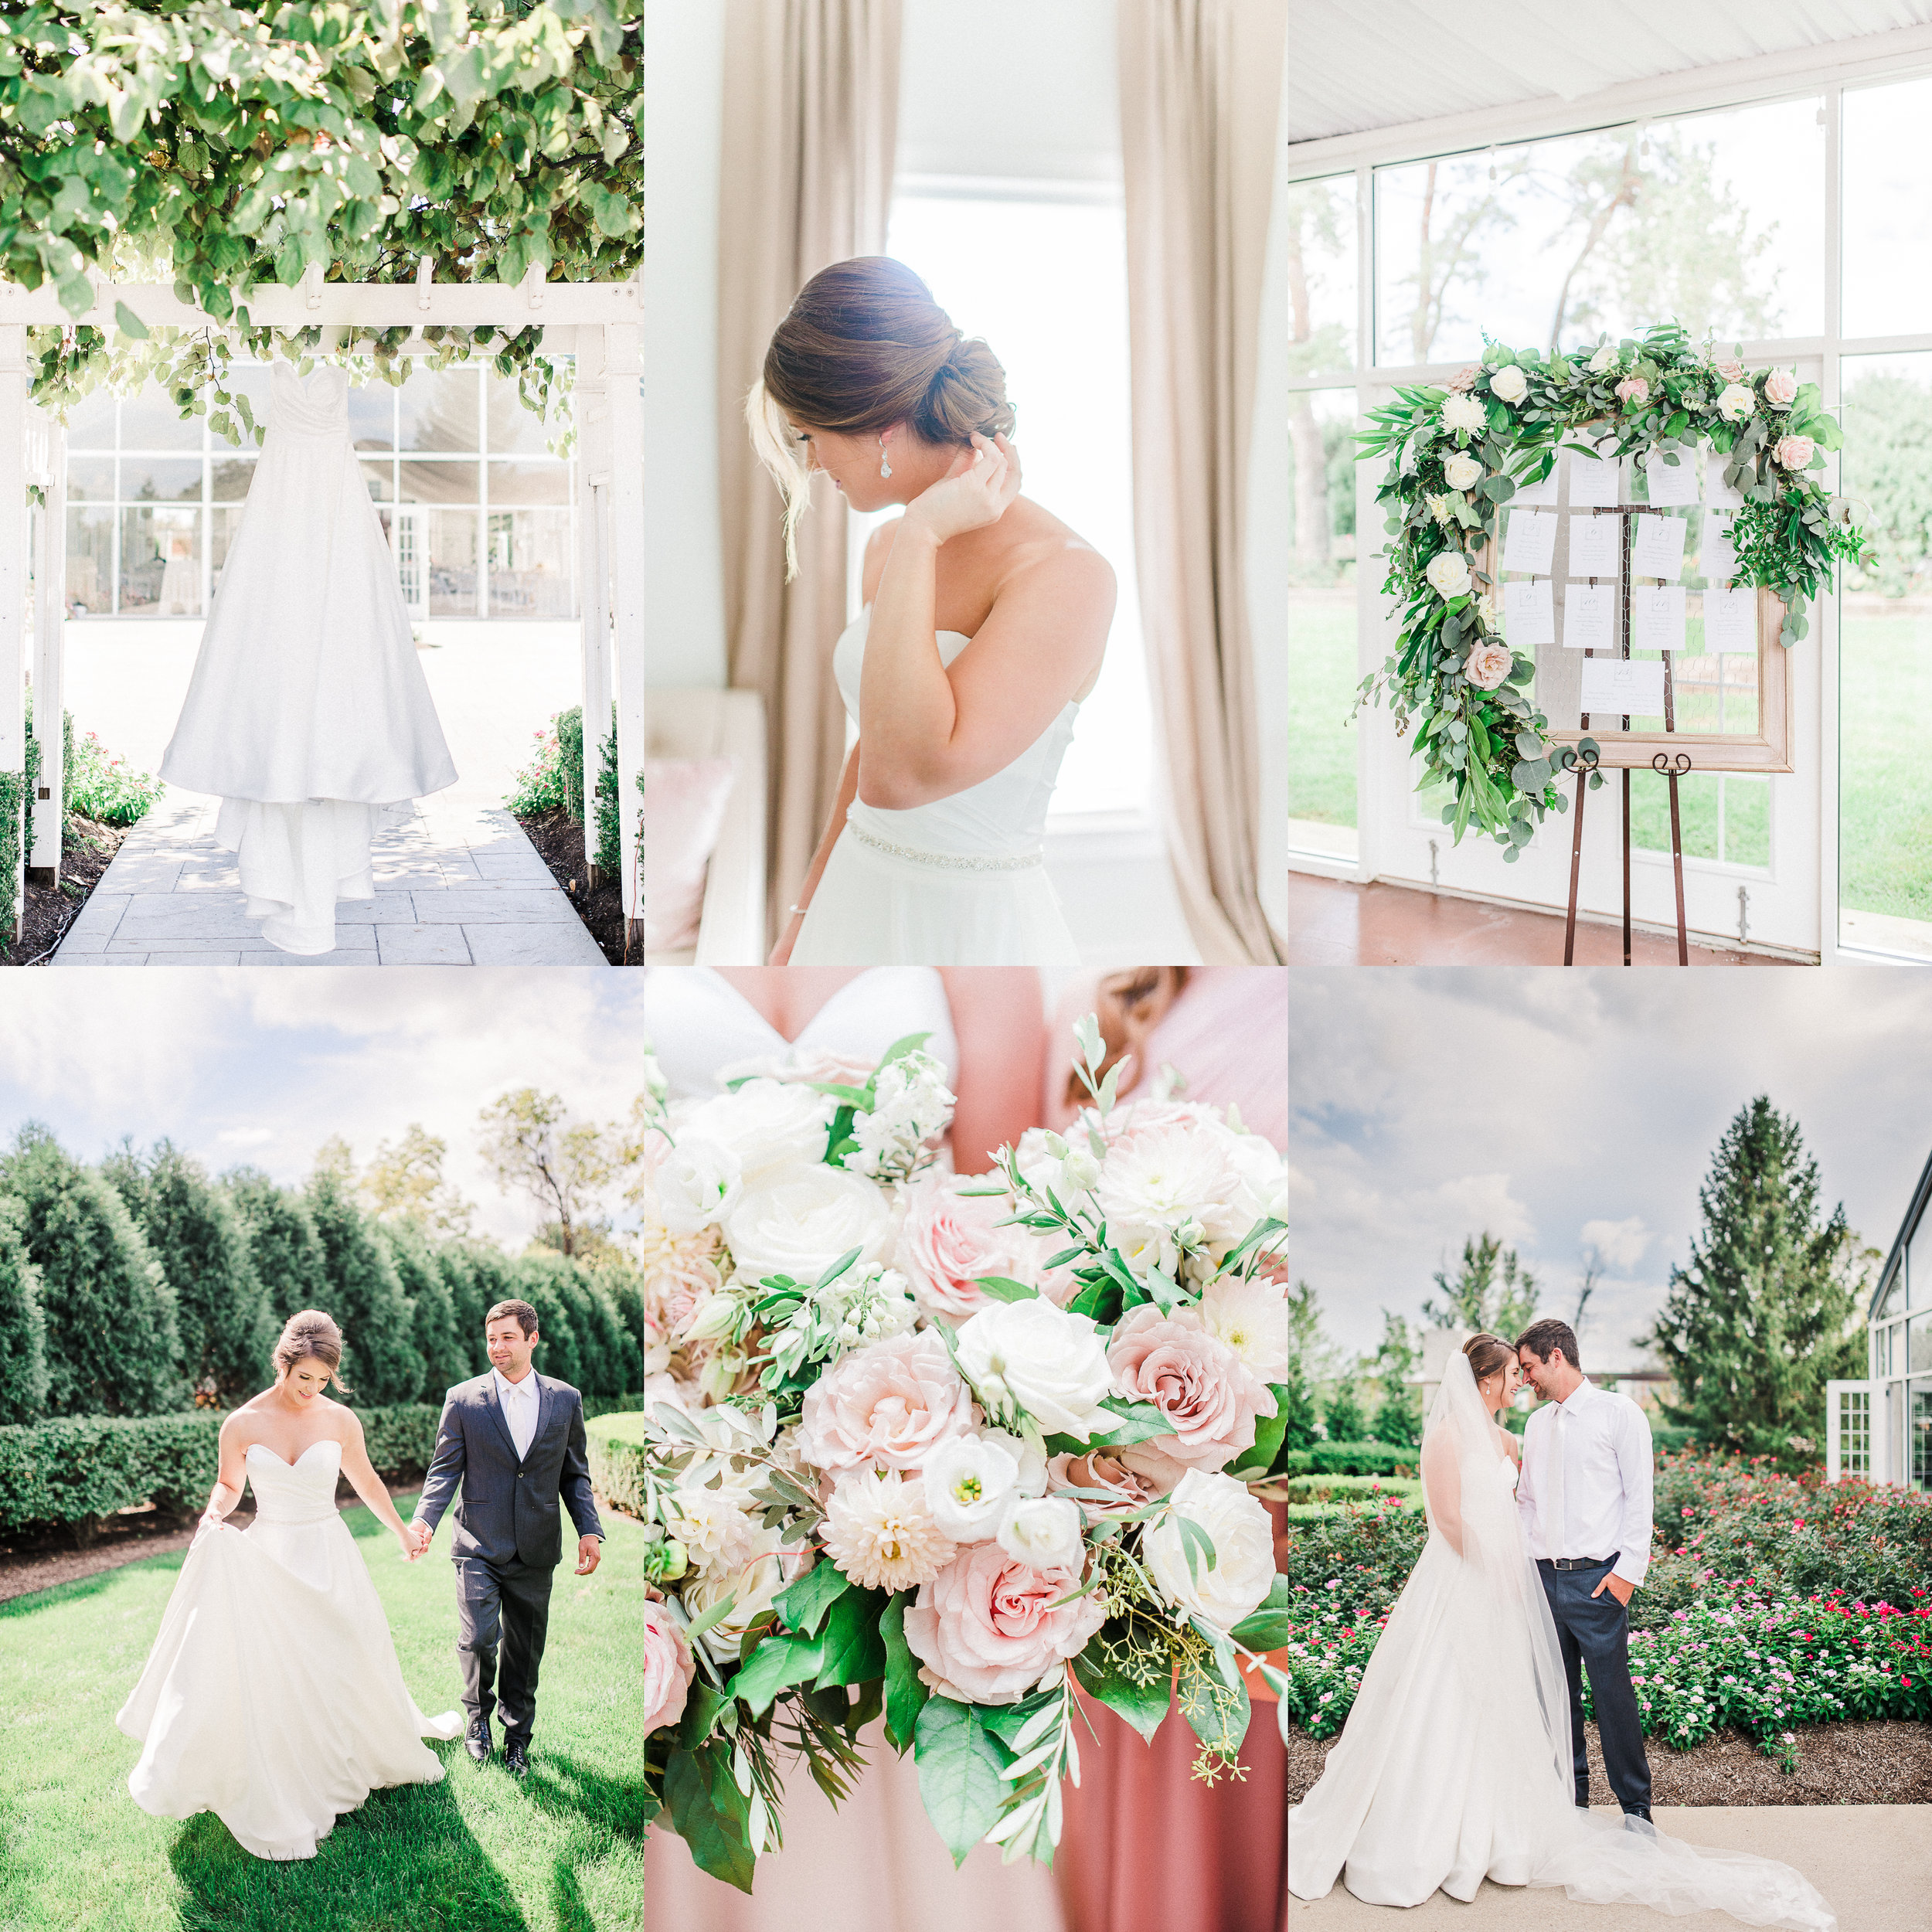 Ashley + Matt | Classically Romantic Wedding at the Ritz Charles in Carmel, IN | International Indianapolis Elopement & Destination Wedding Photographers